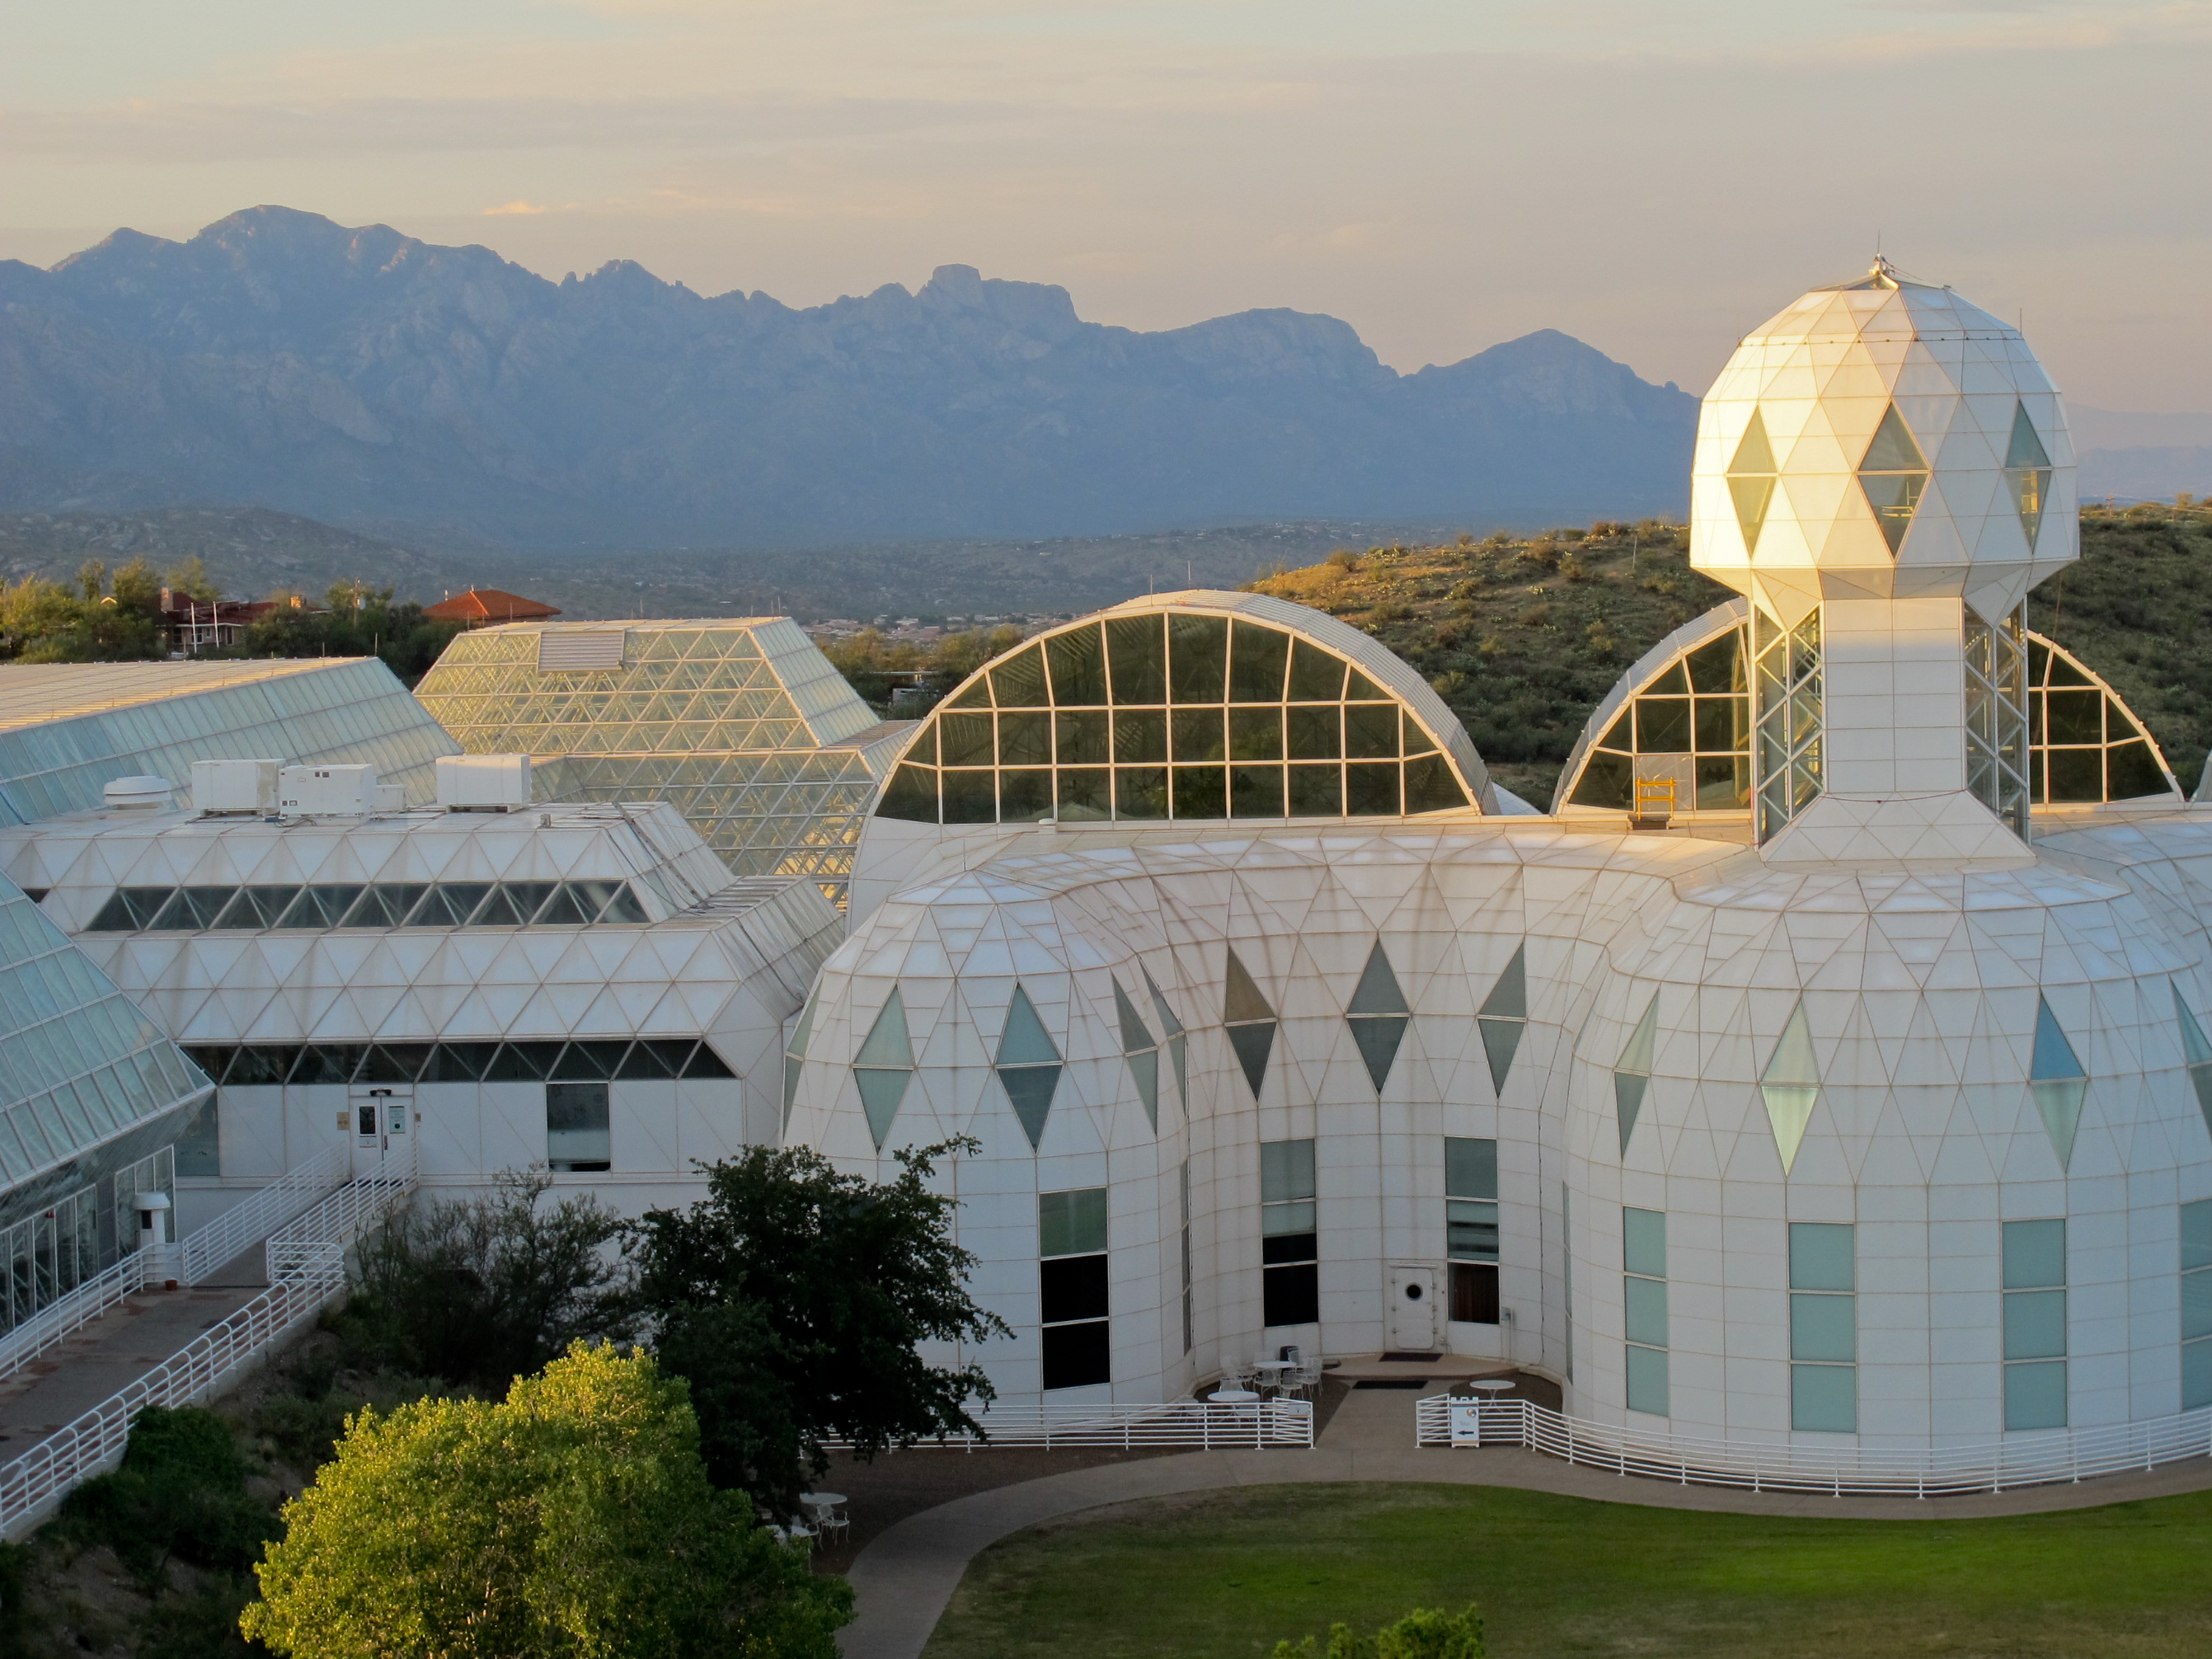 Sunset at the Biosphere 2 science and research facility north of Tucson